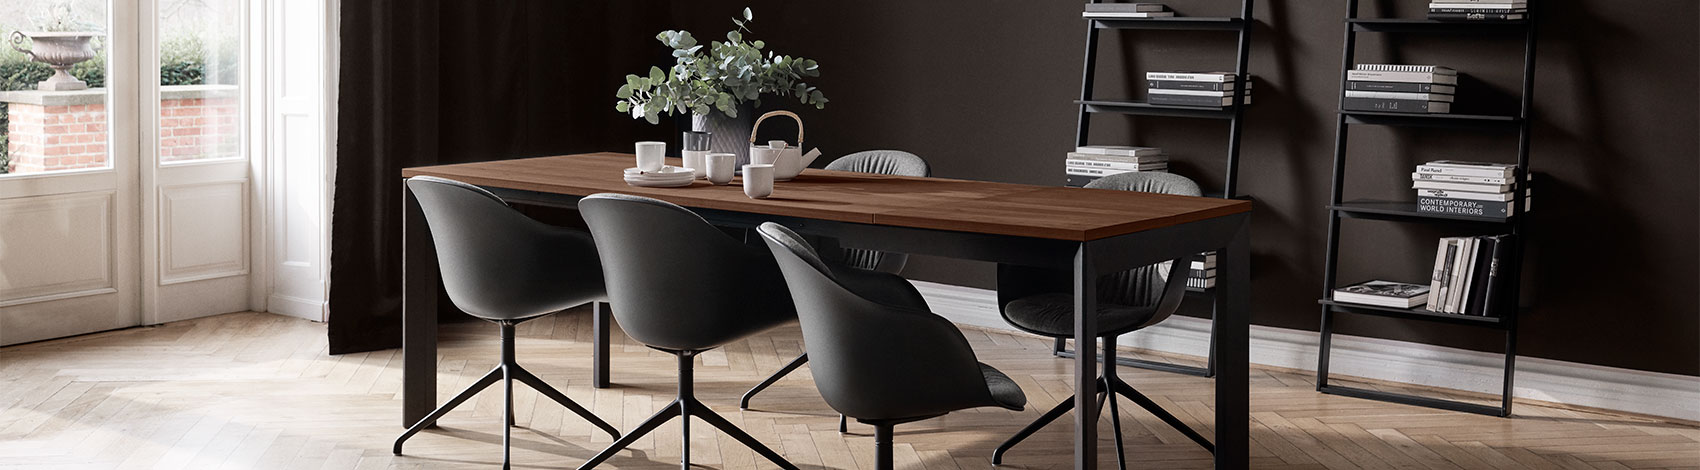 Lyon dining table with walnut veneer table top and black Adelaide dining chairs